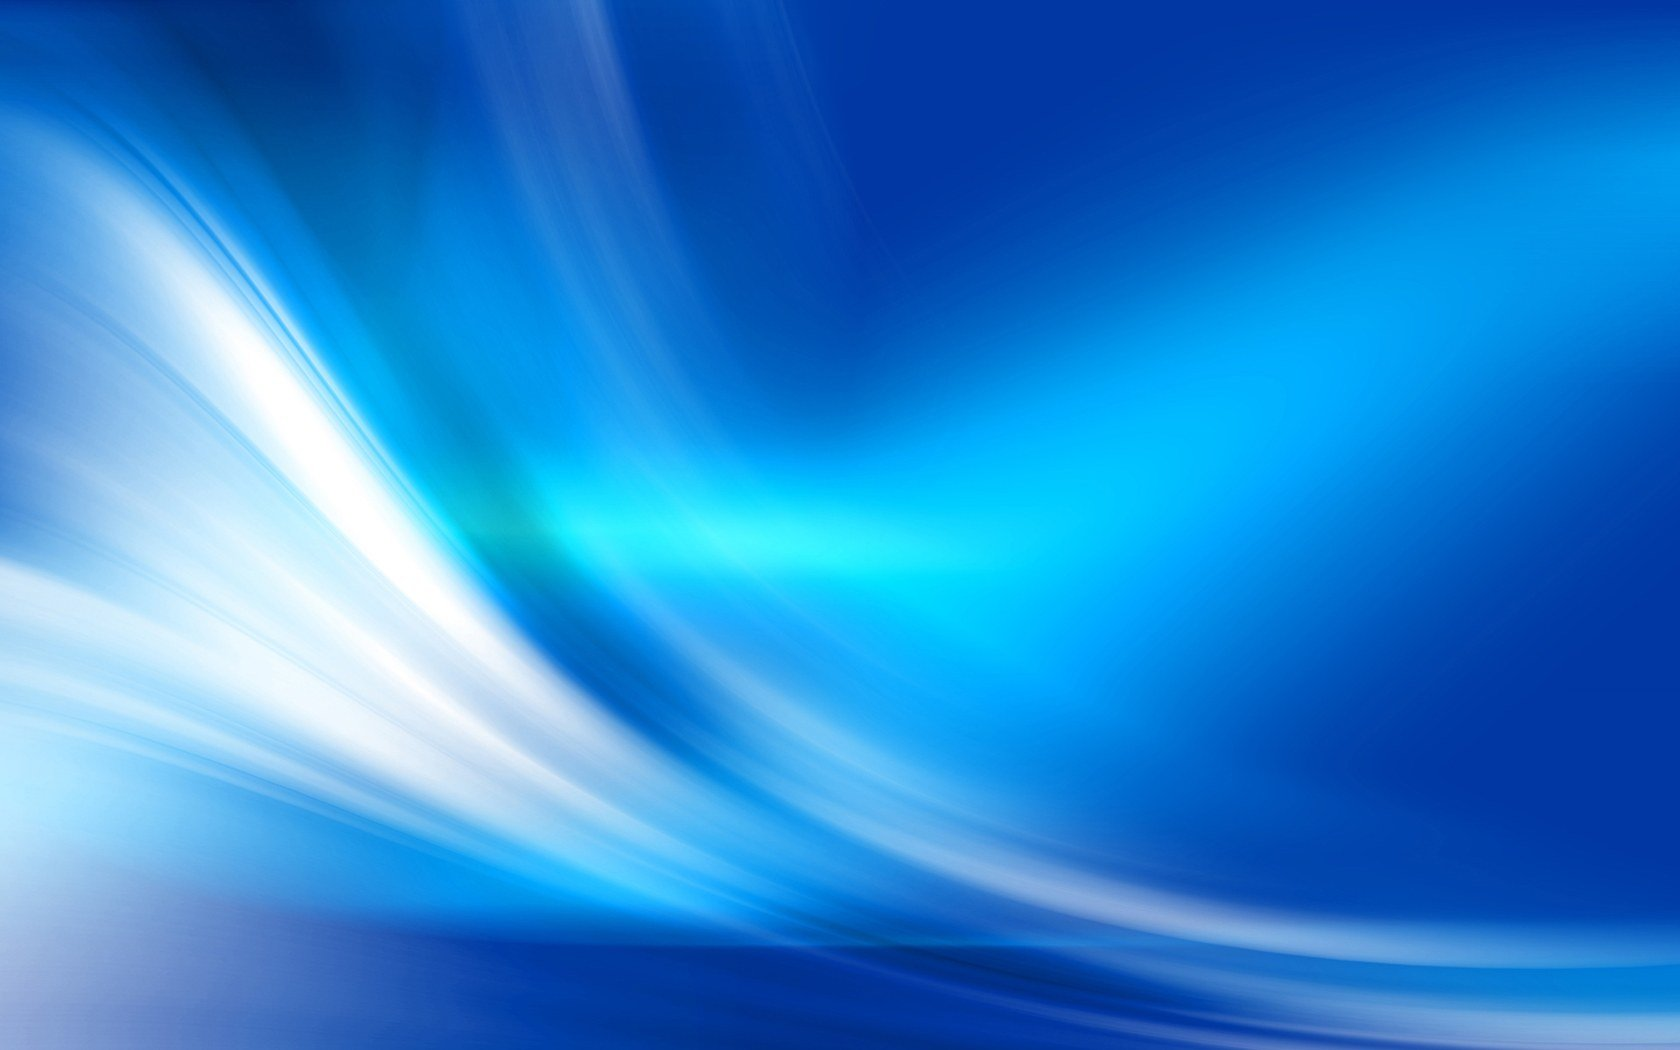 Hd Abstract Blue Background: Awesome Blue Backgrounds